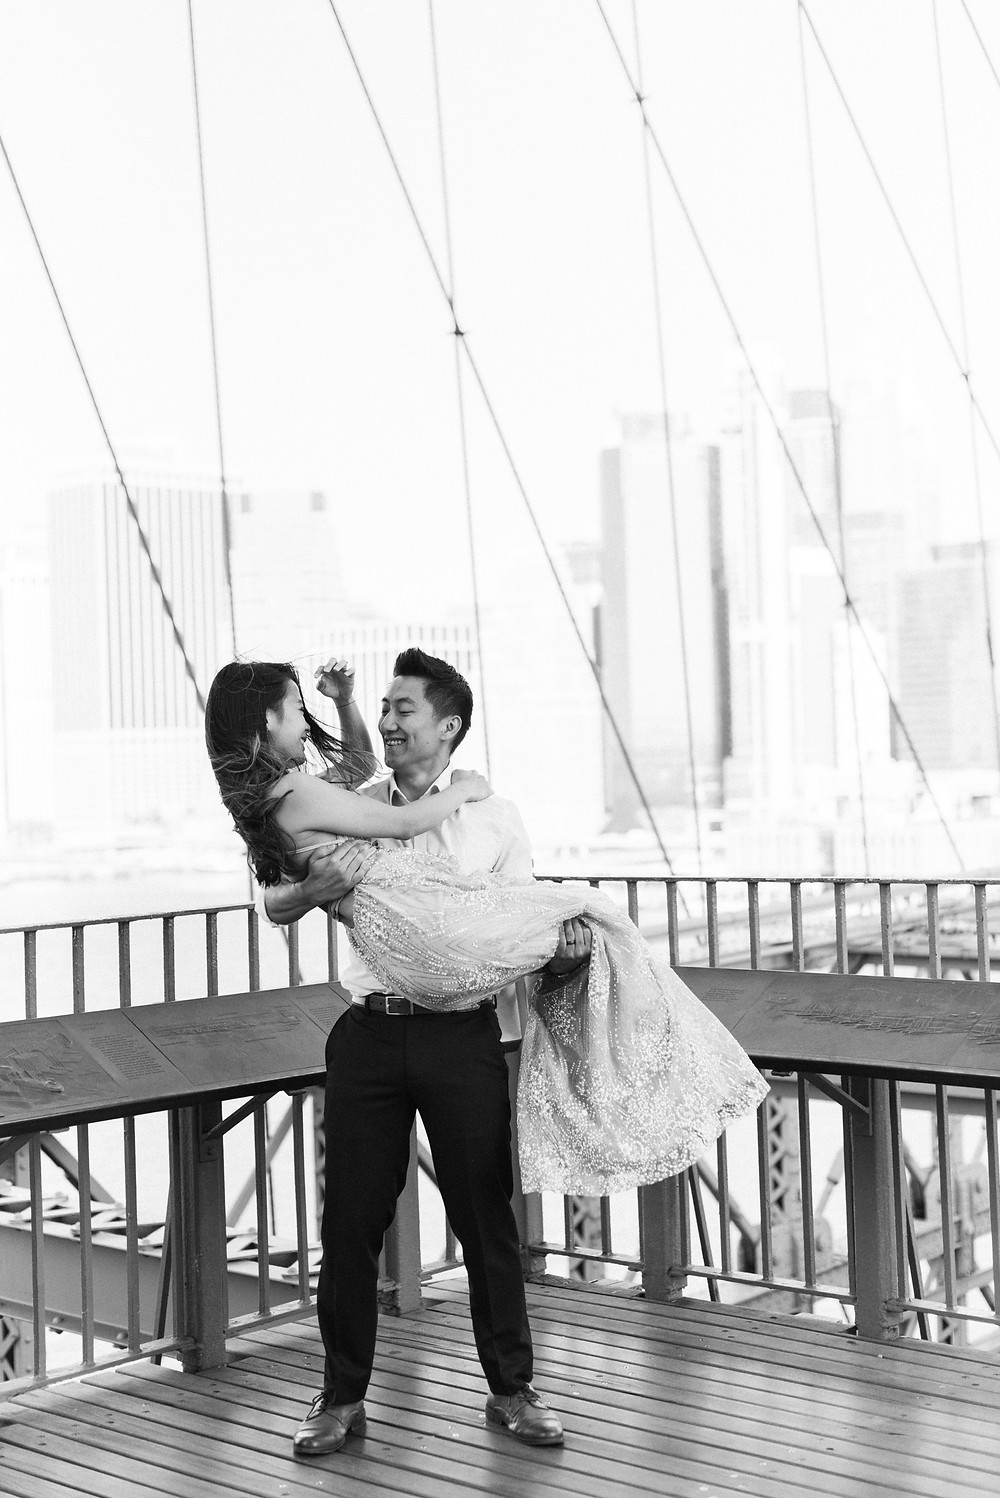 a bride and groom engagement session at brooklyn bridge and central park new york